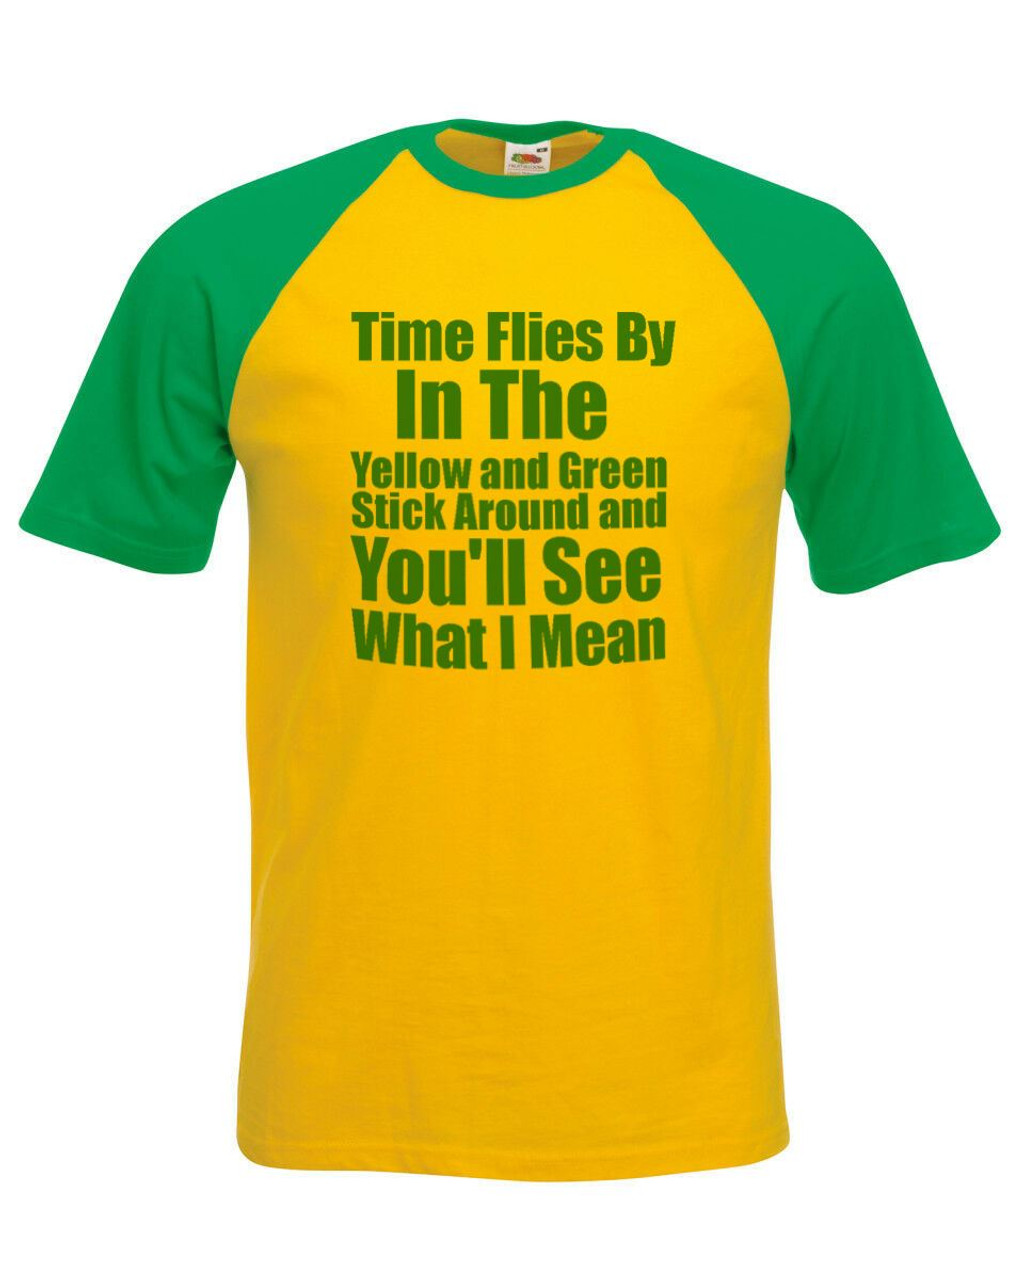 fe897774 Unisex Yellow & Green George Ezra T-Shirt Shirt Time Flies By Stick Around